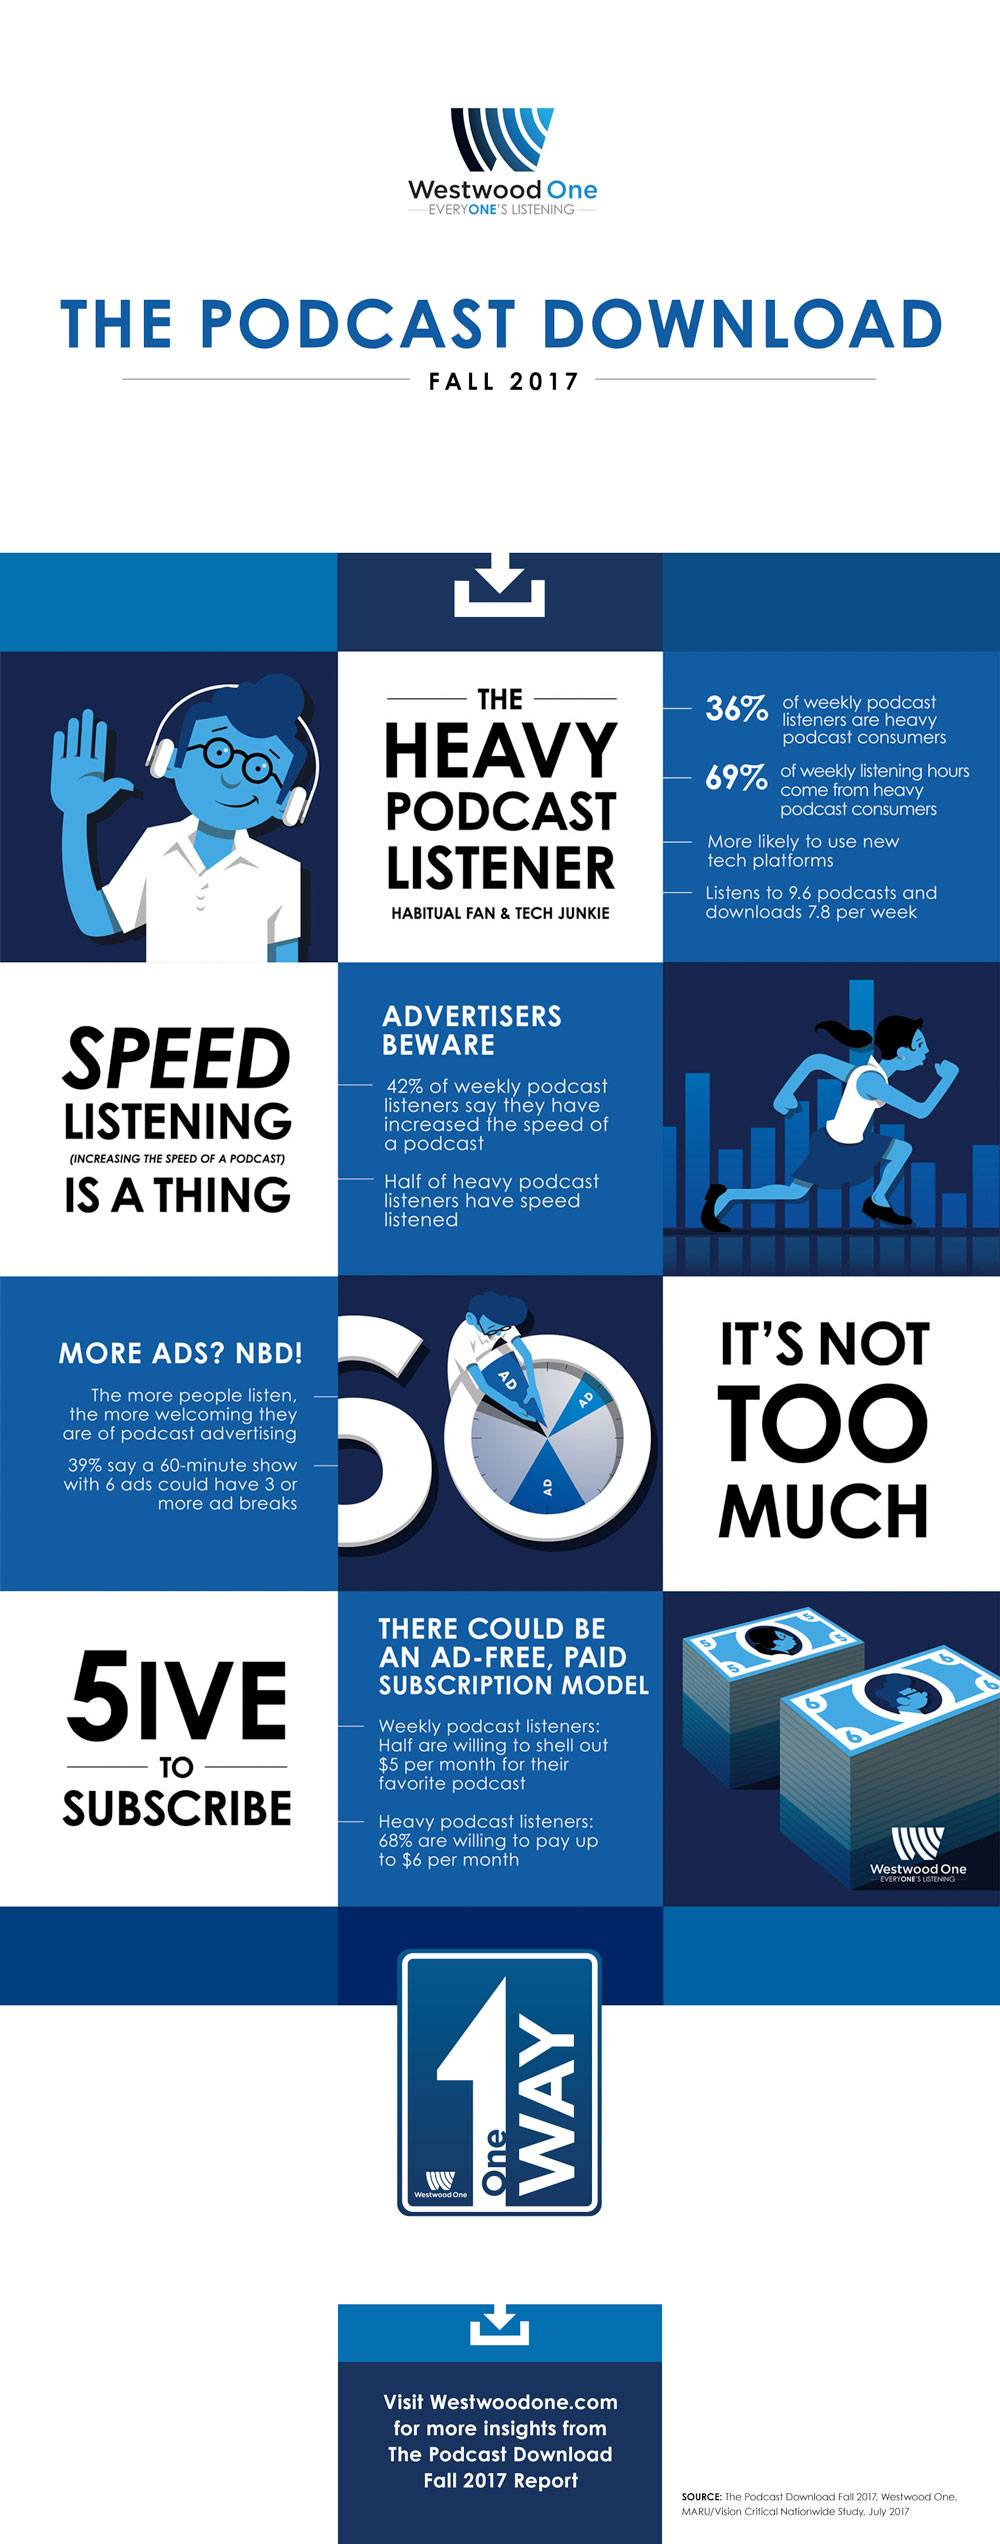 The Podcast Download Fall 2017 Infographic Westwood One